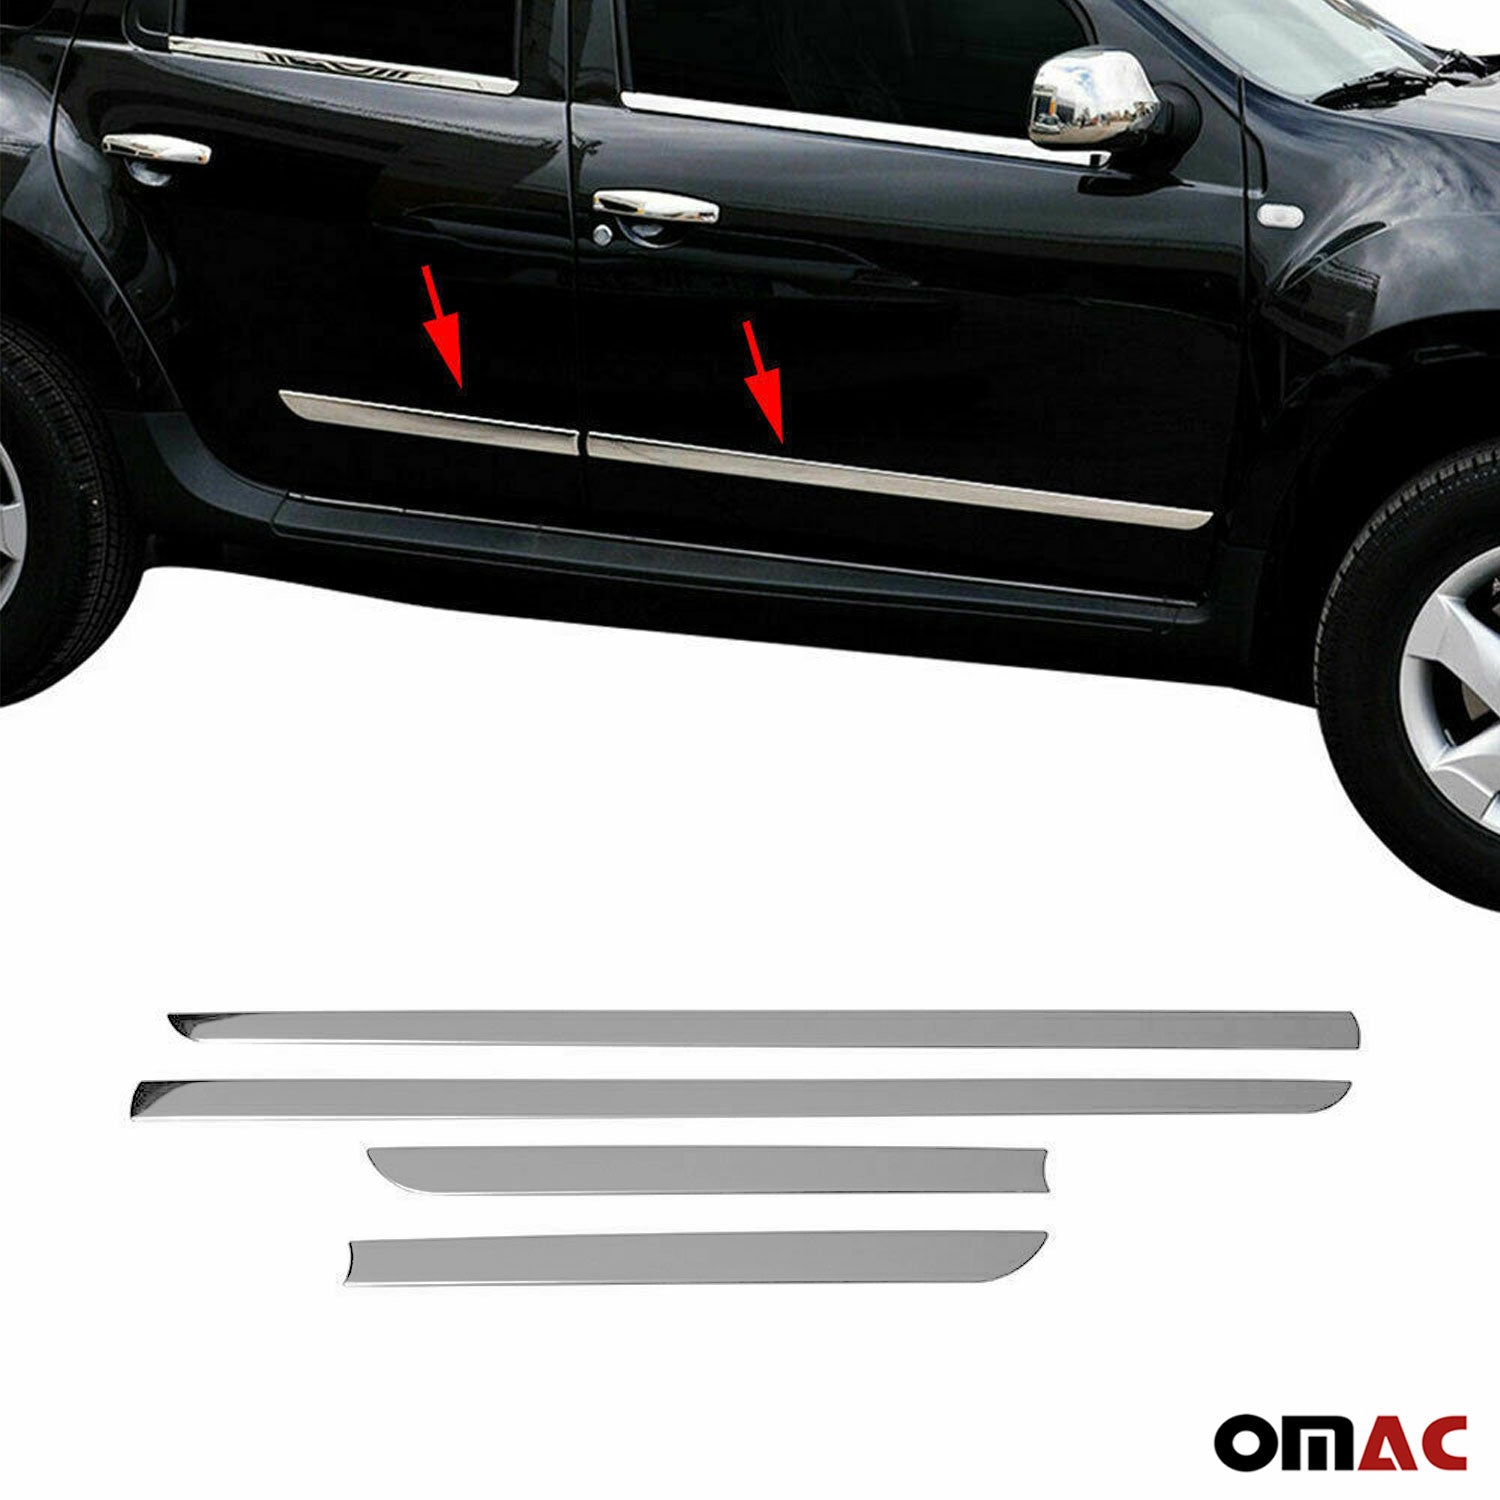 FORD KUGA 2008-2012 Chrome Side Body Door Protect Trim Stainless Steel